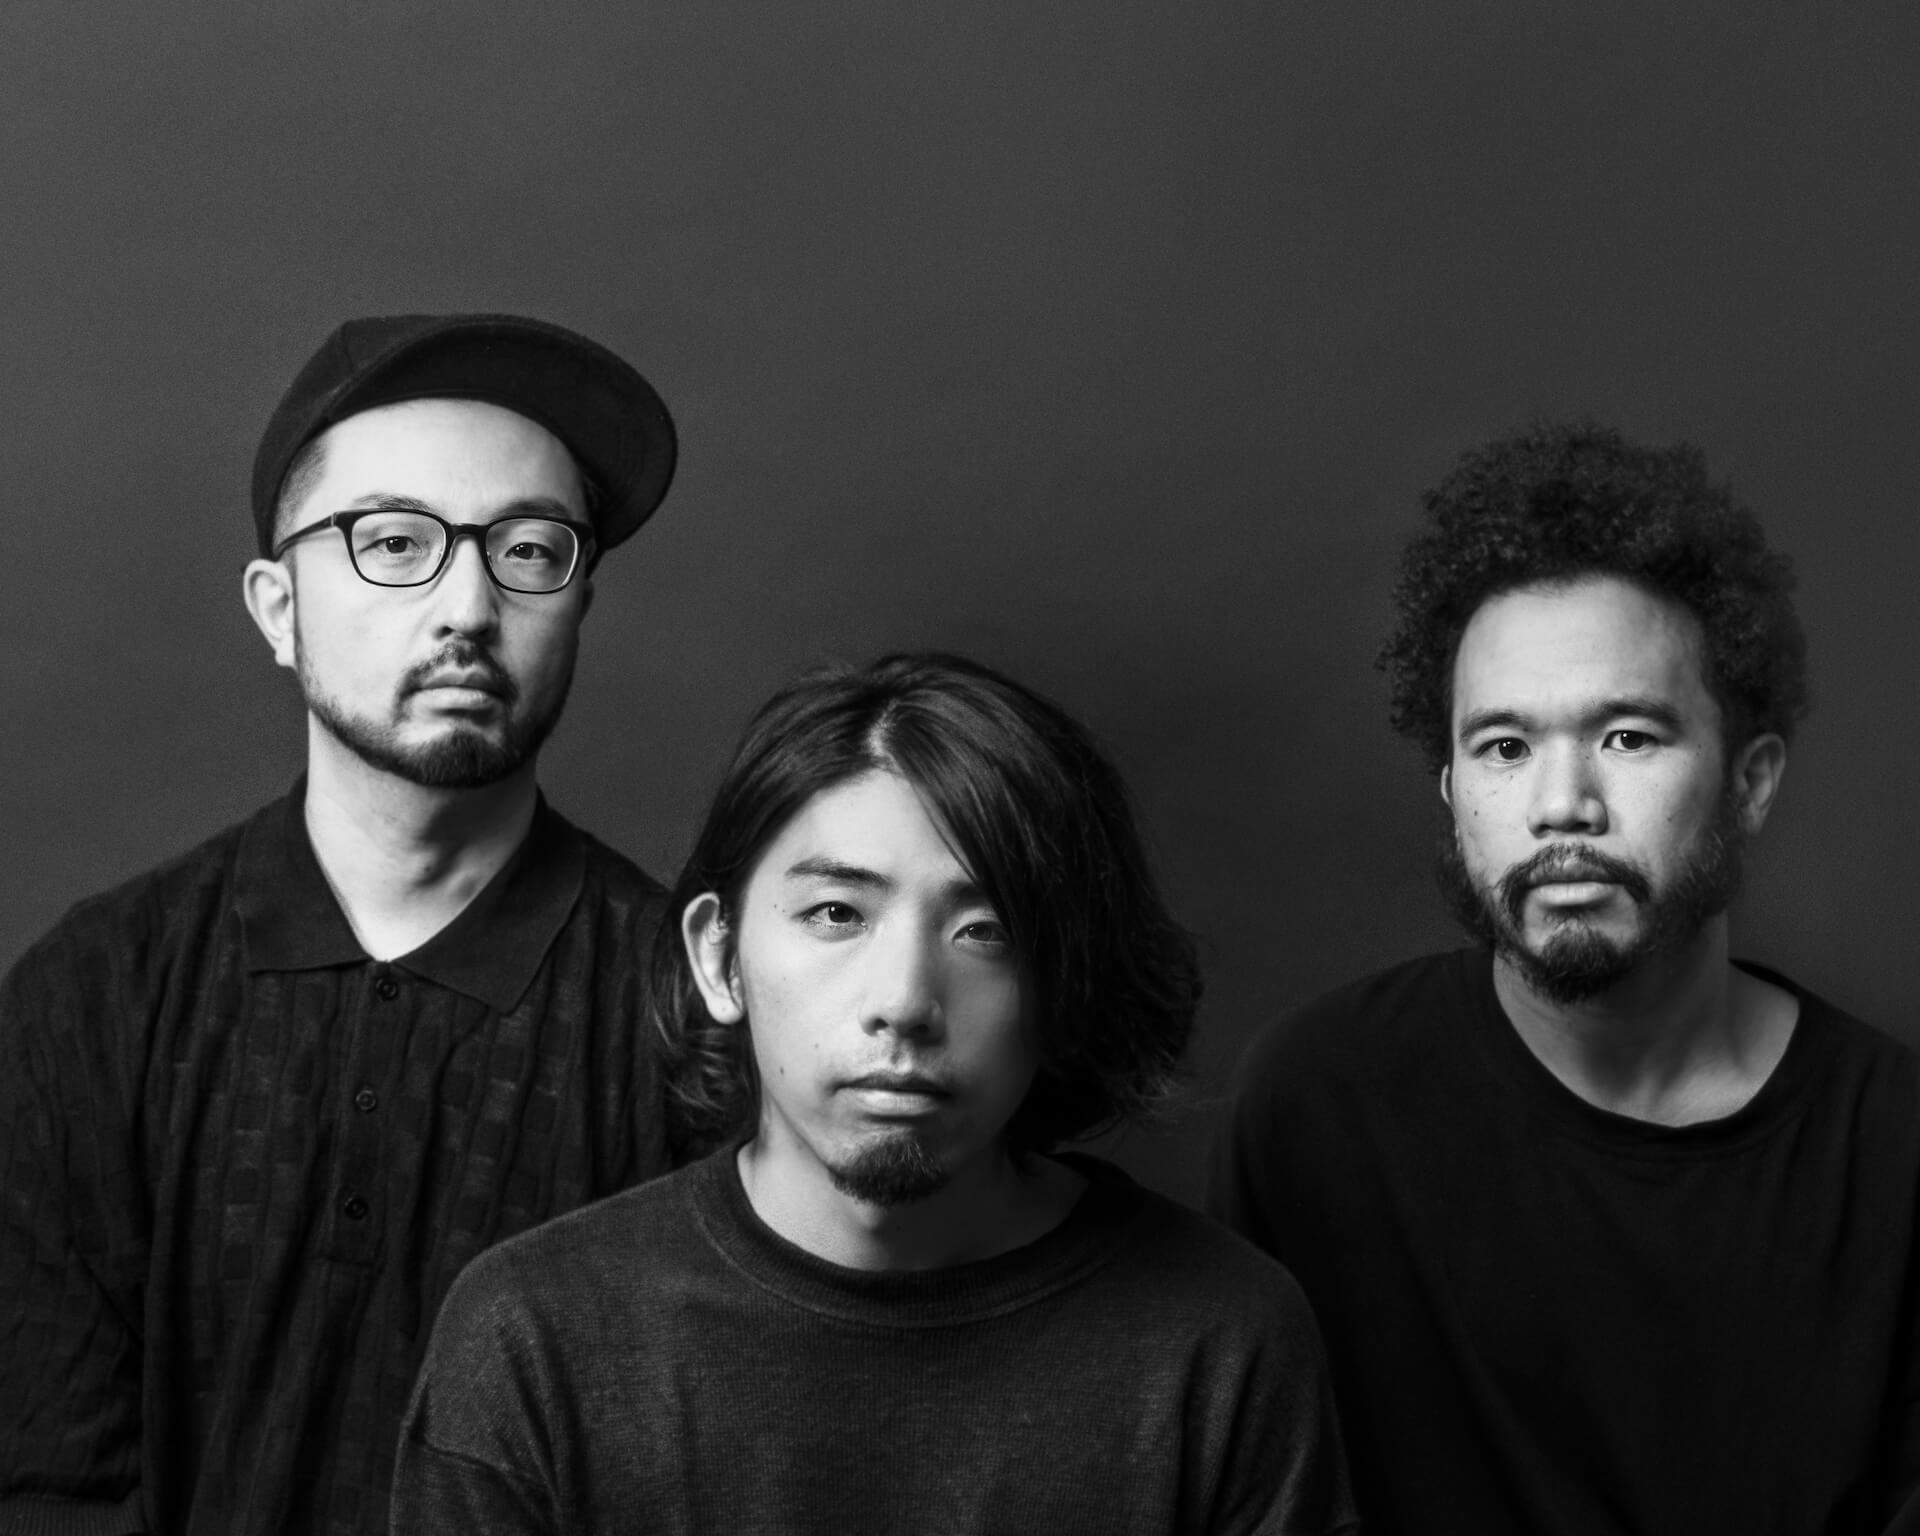 origami座談会|mabanua、Ovall、Kan Sano、Michael Kanekoら所属「origami PRODUCTIONS」の2019年を振り返る interview20191213-origami-production-1